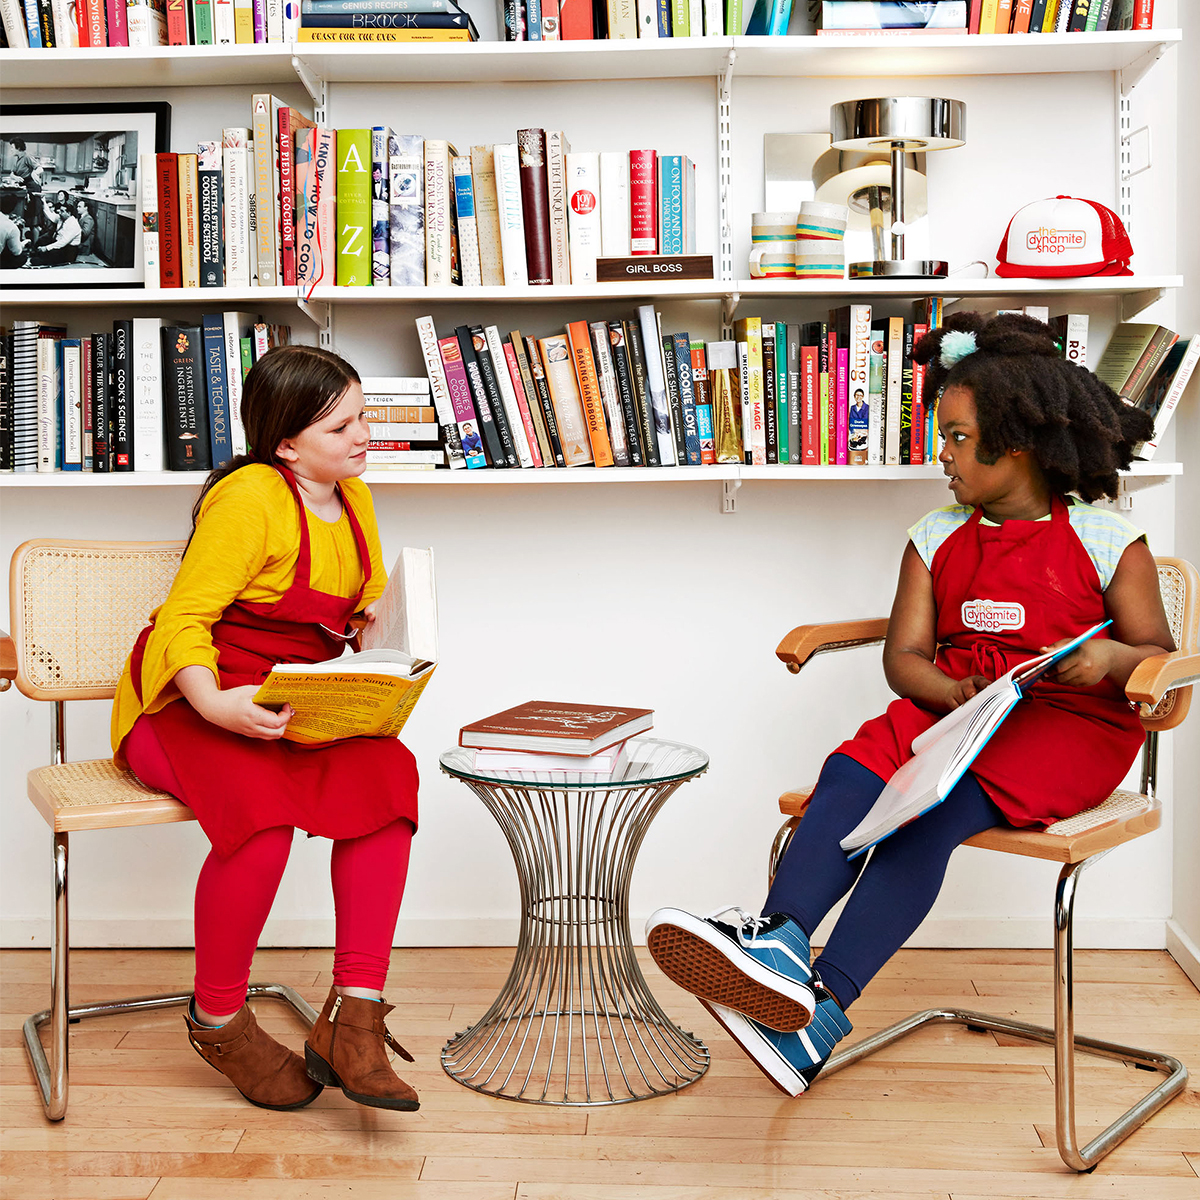 kids in cookbook library